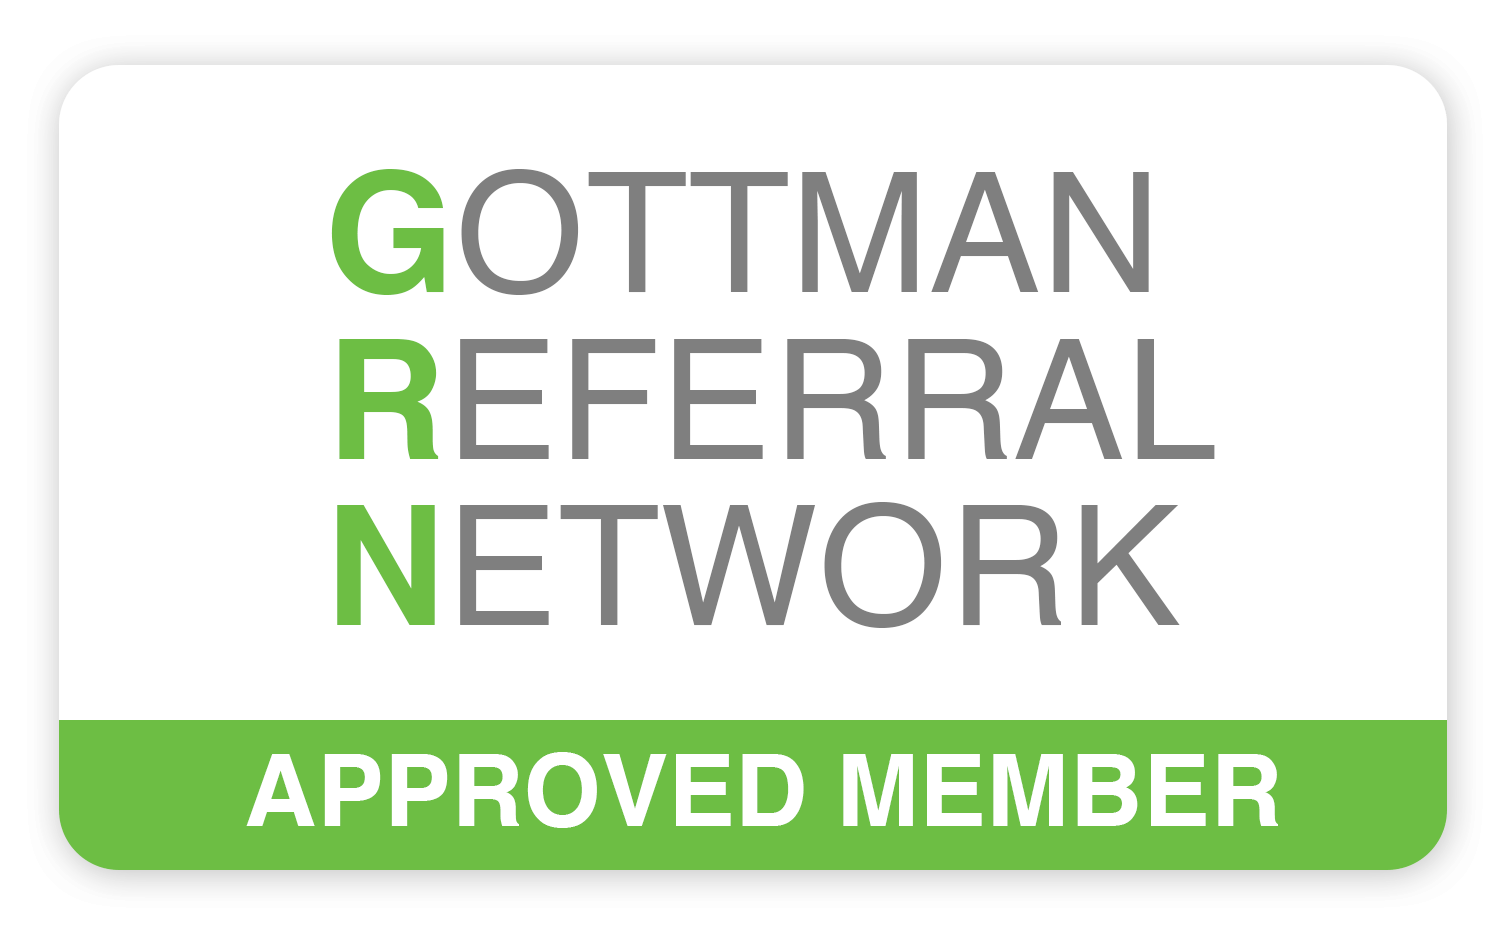 Amber Ault's profile on the Gottman Referral Network